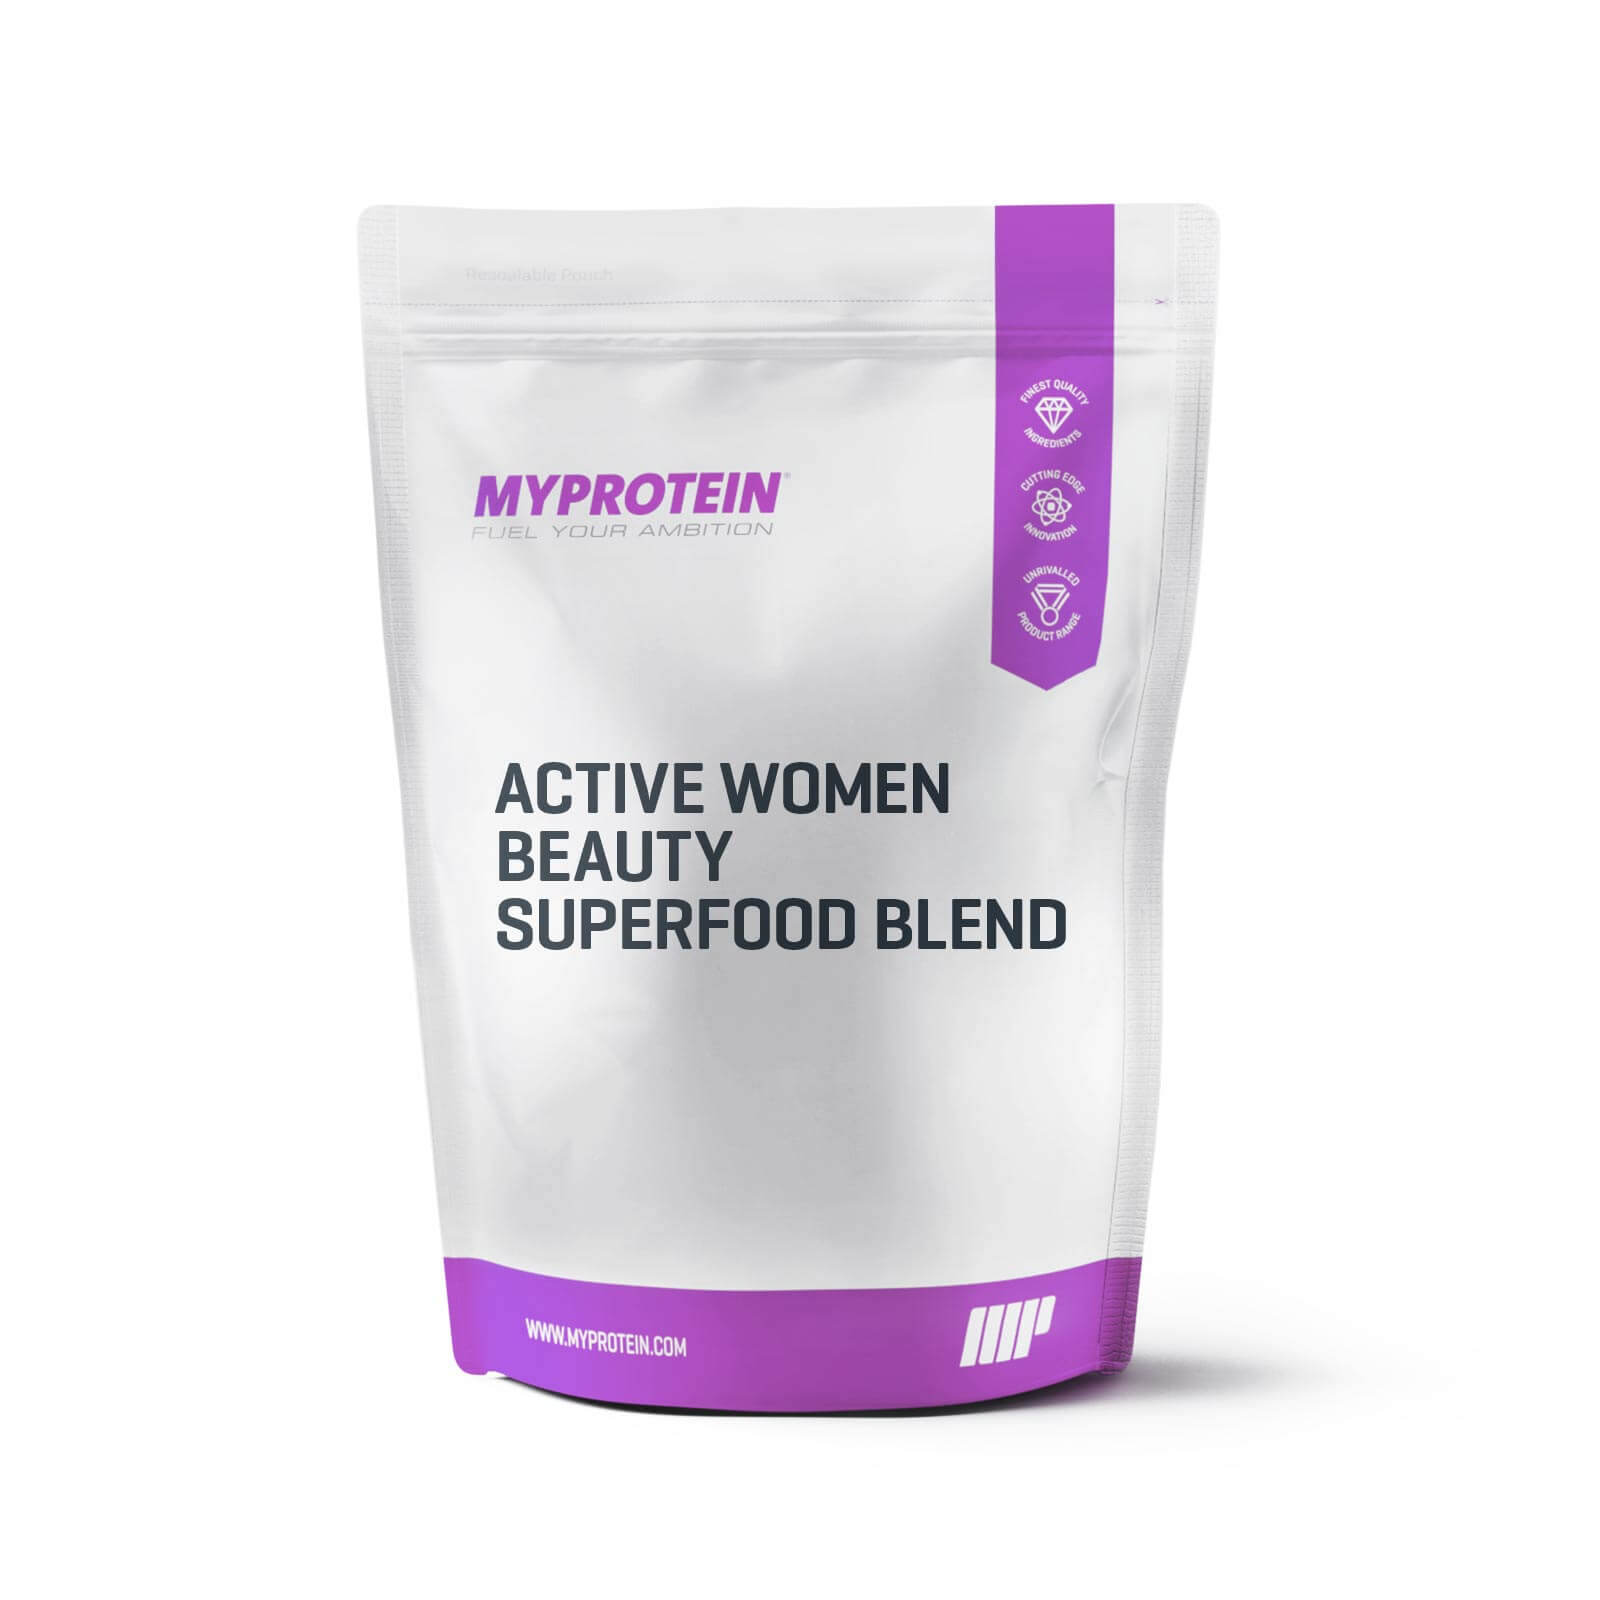 Active Women Beauty Superfood Blend